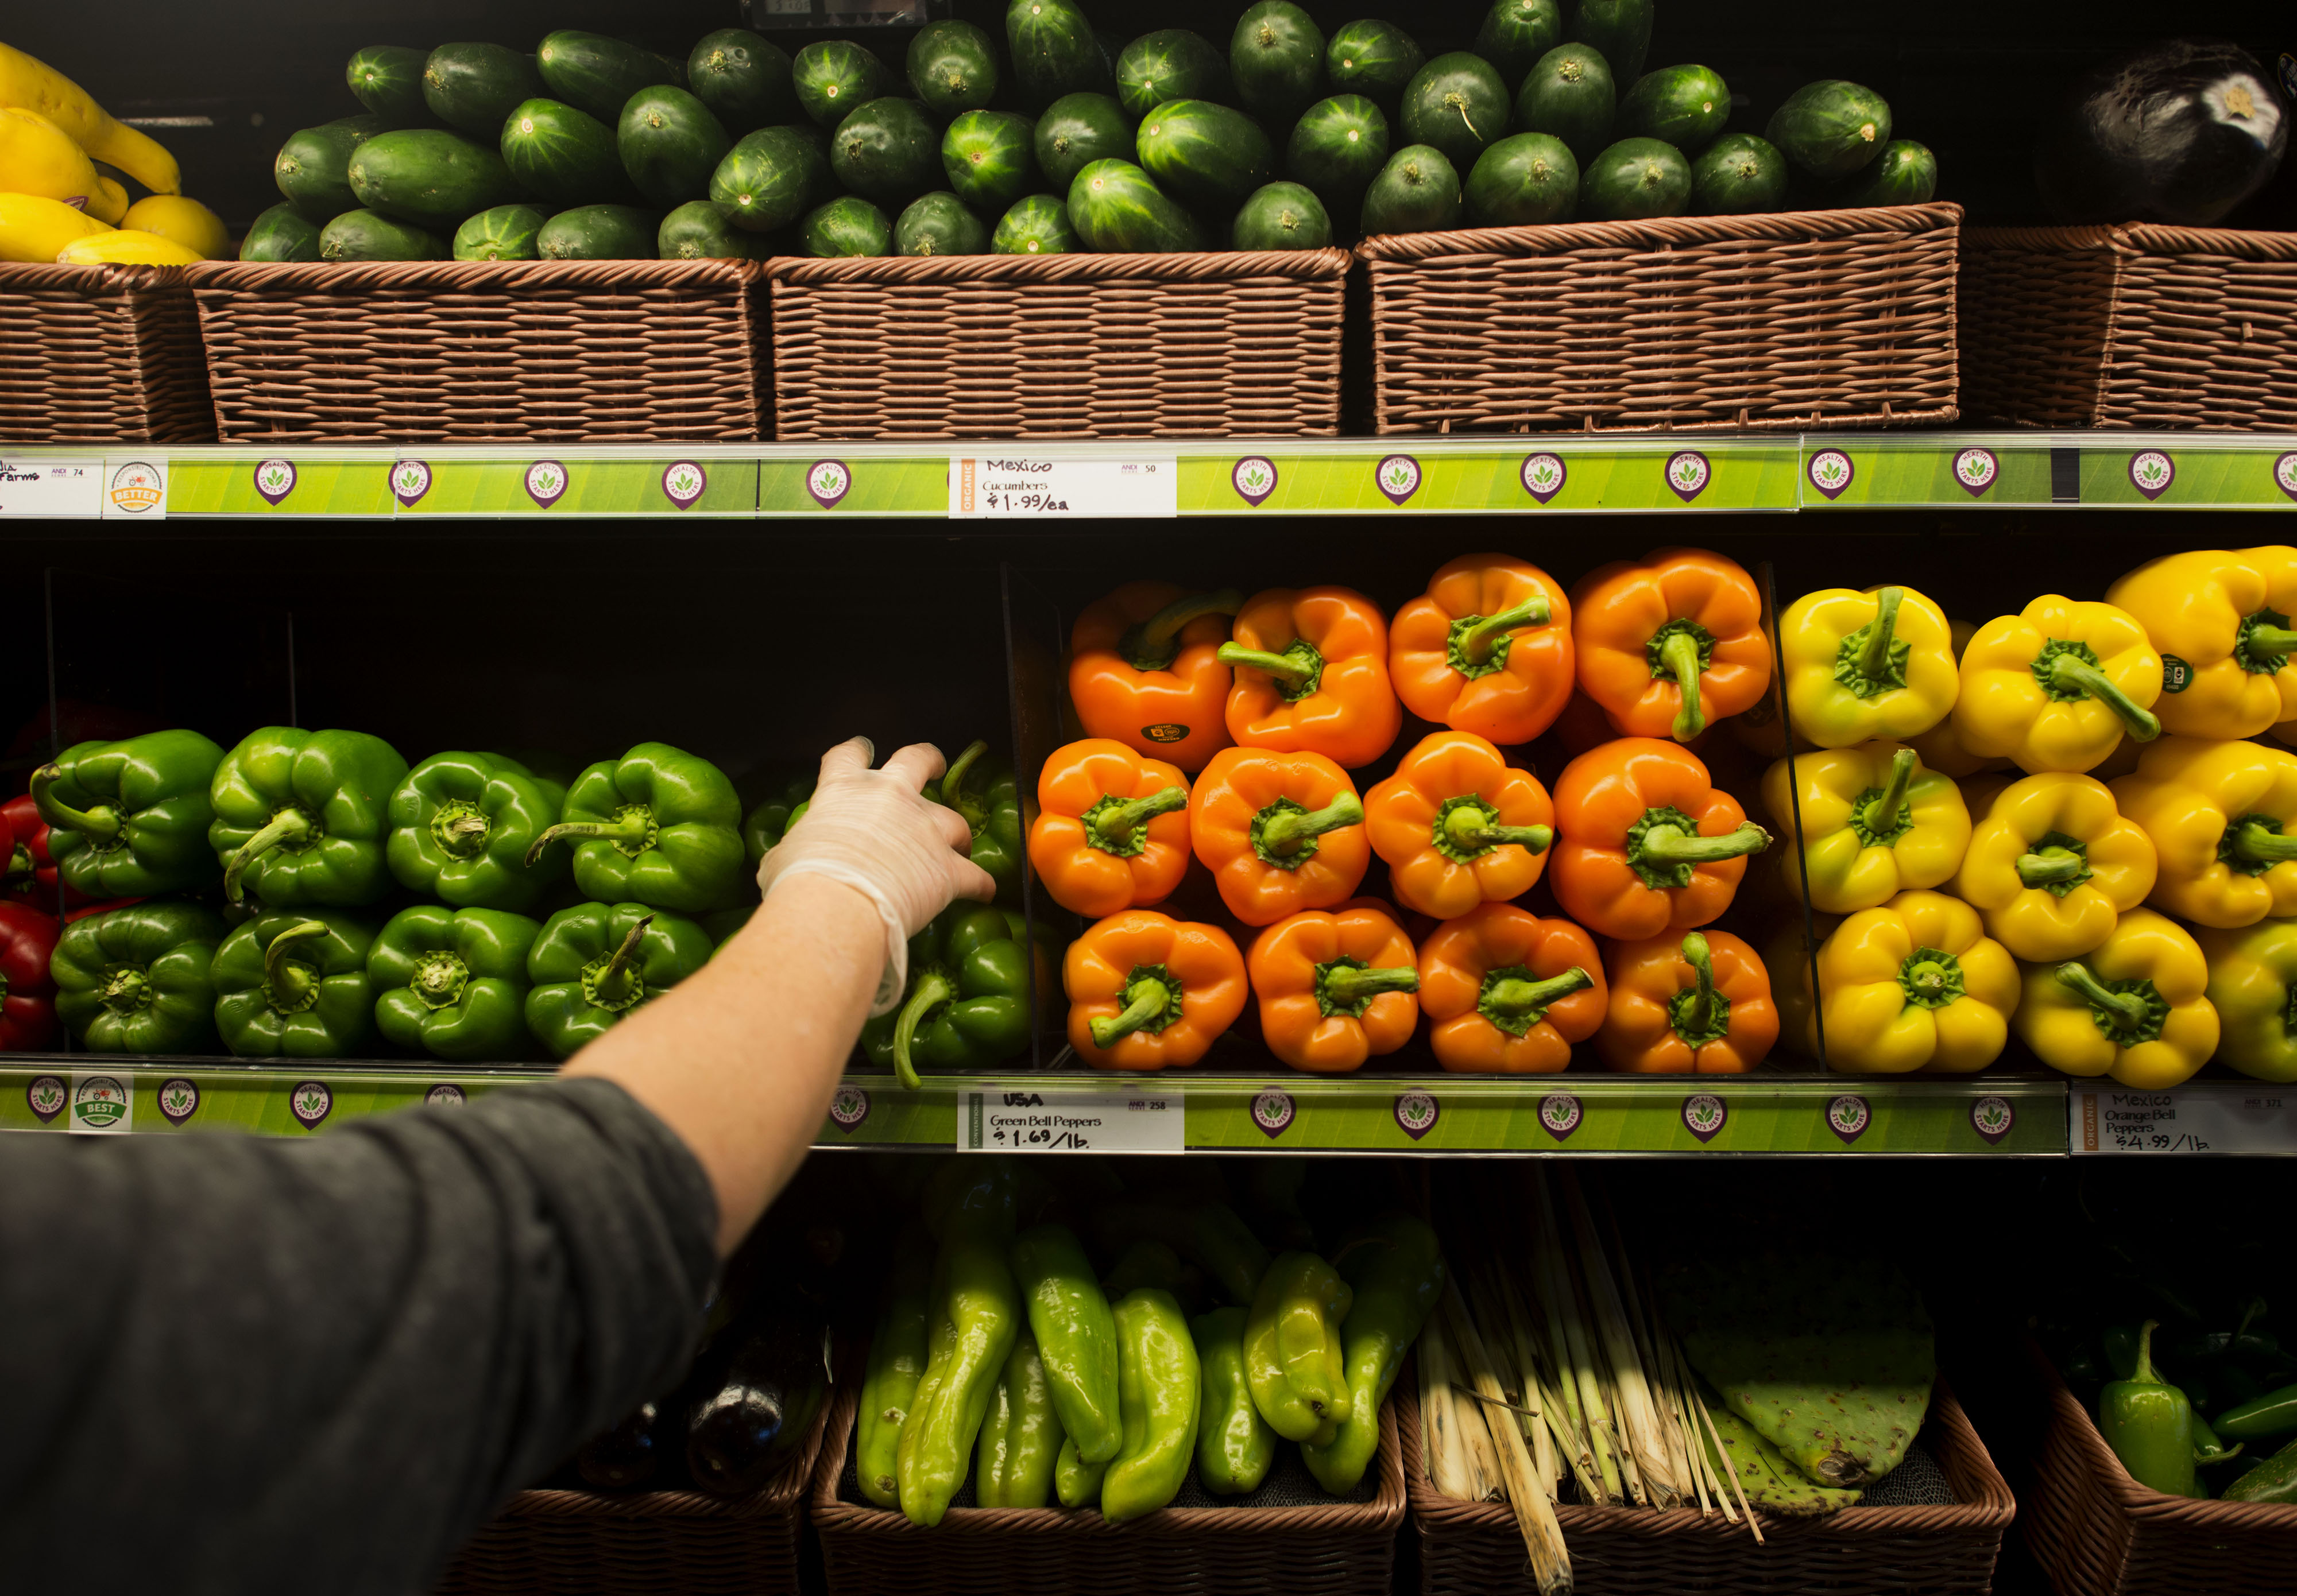 When Do Stores Restock Produce And When Should You Go Grocery